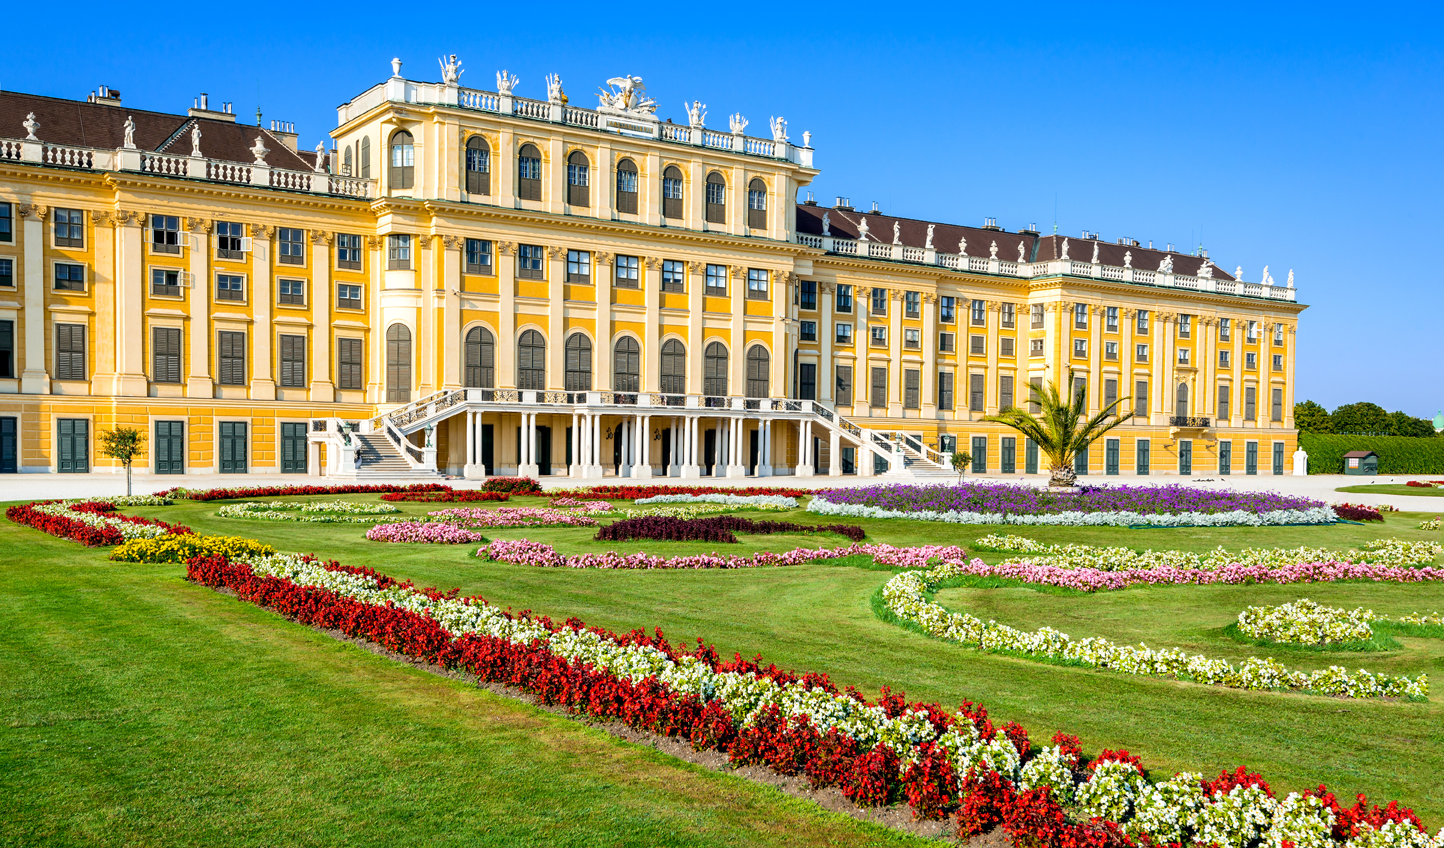 Spend a day visiting the Habsburg's summer home at Schonbrunn